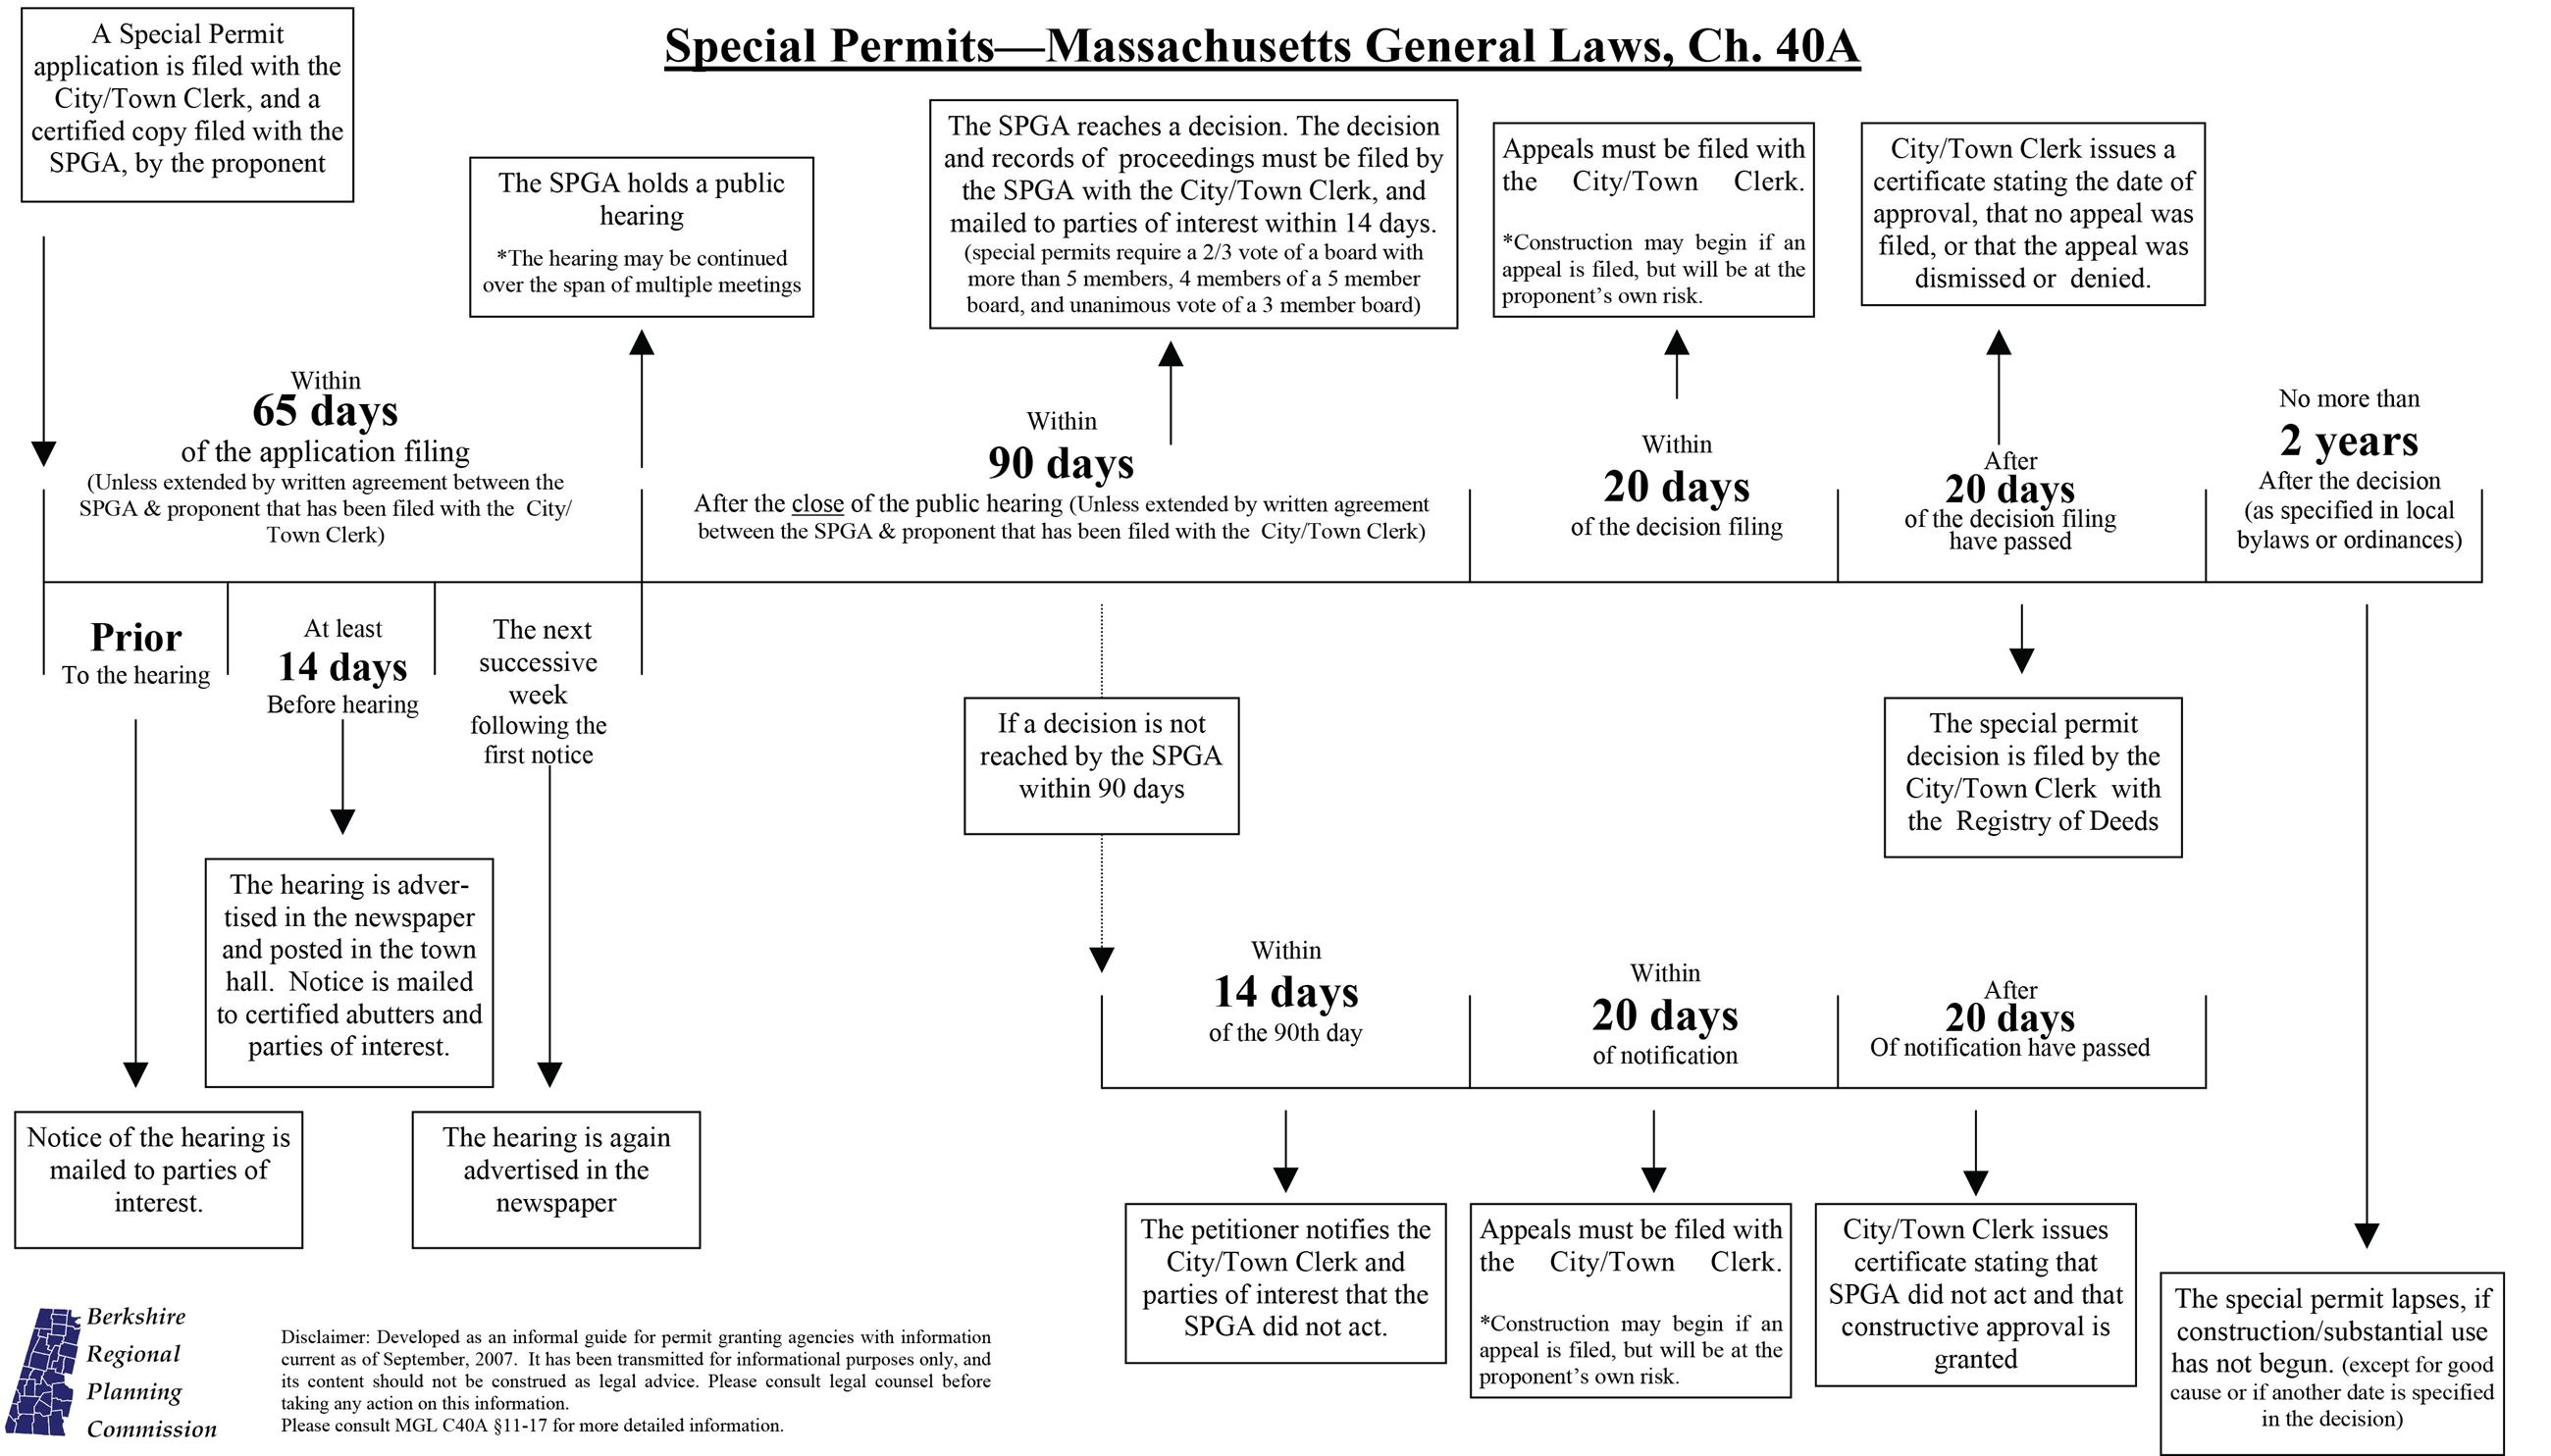 Special Permit Time Line